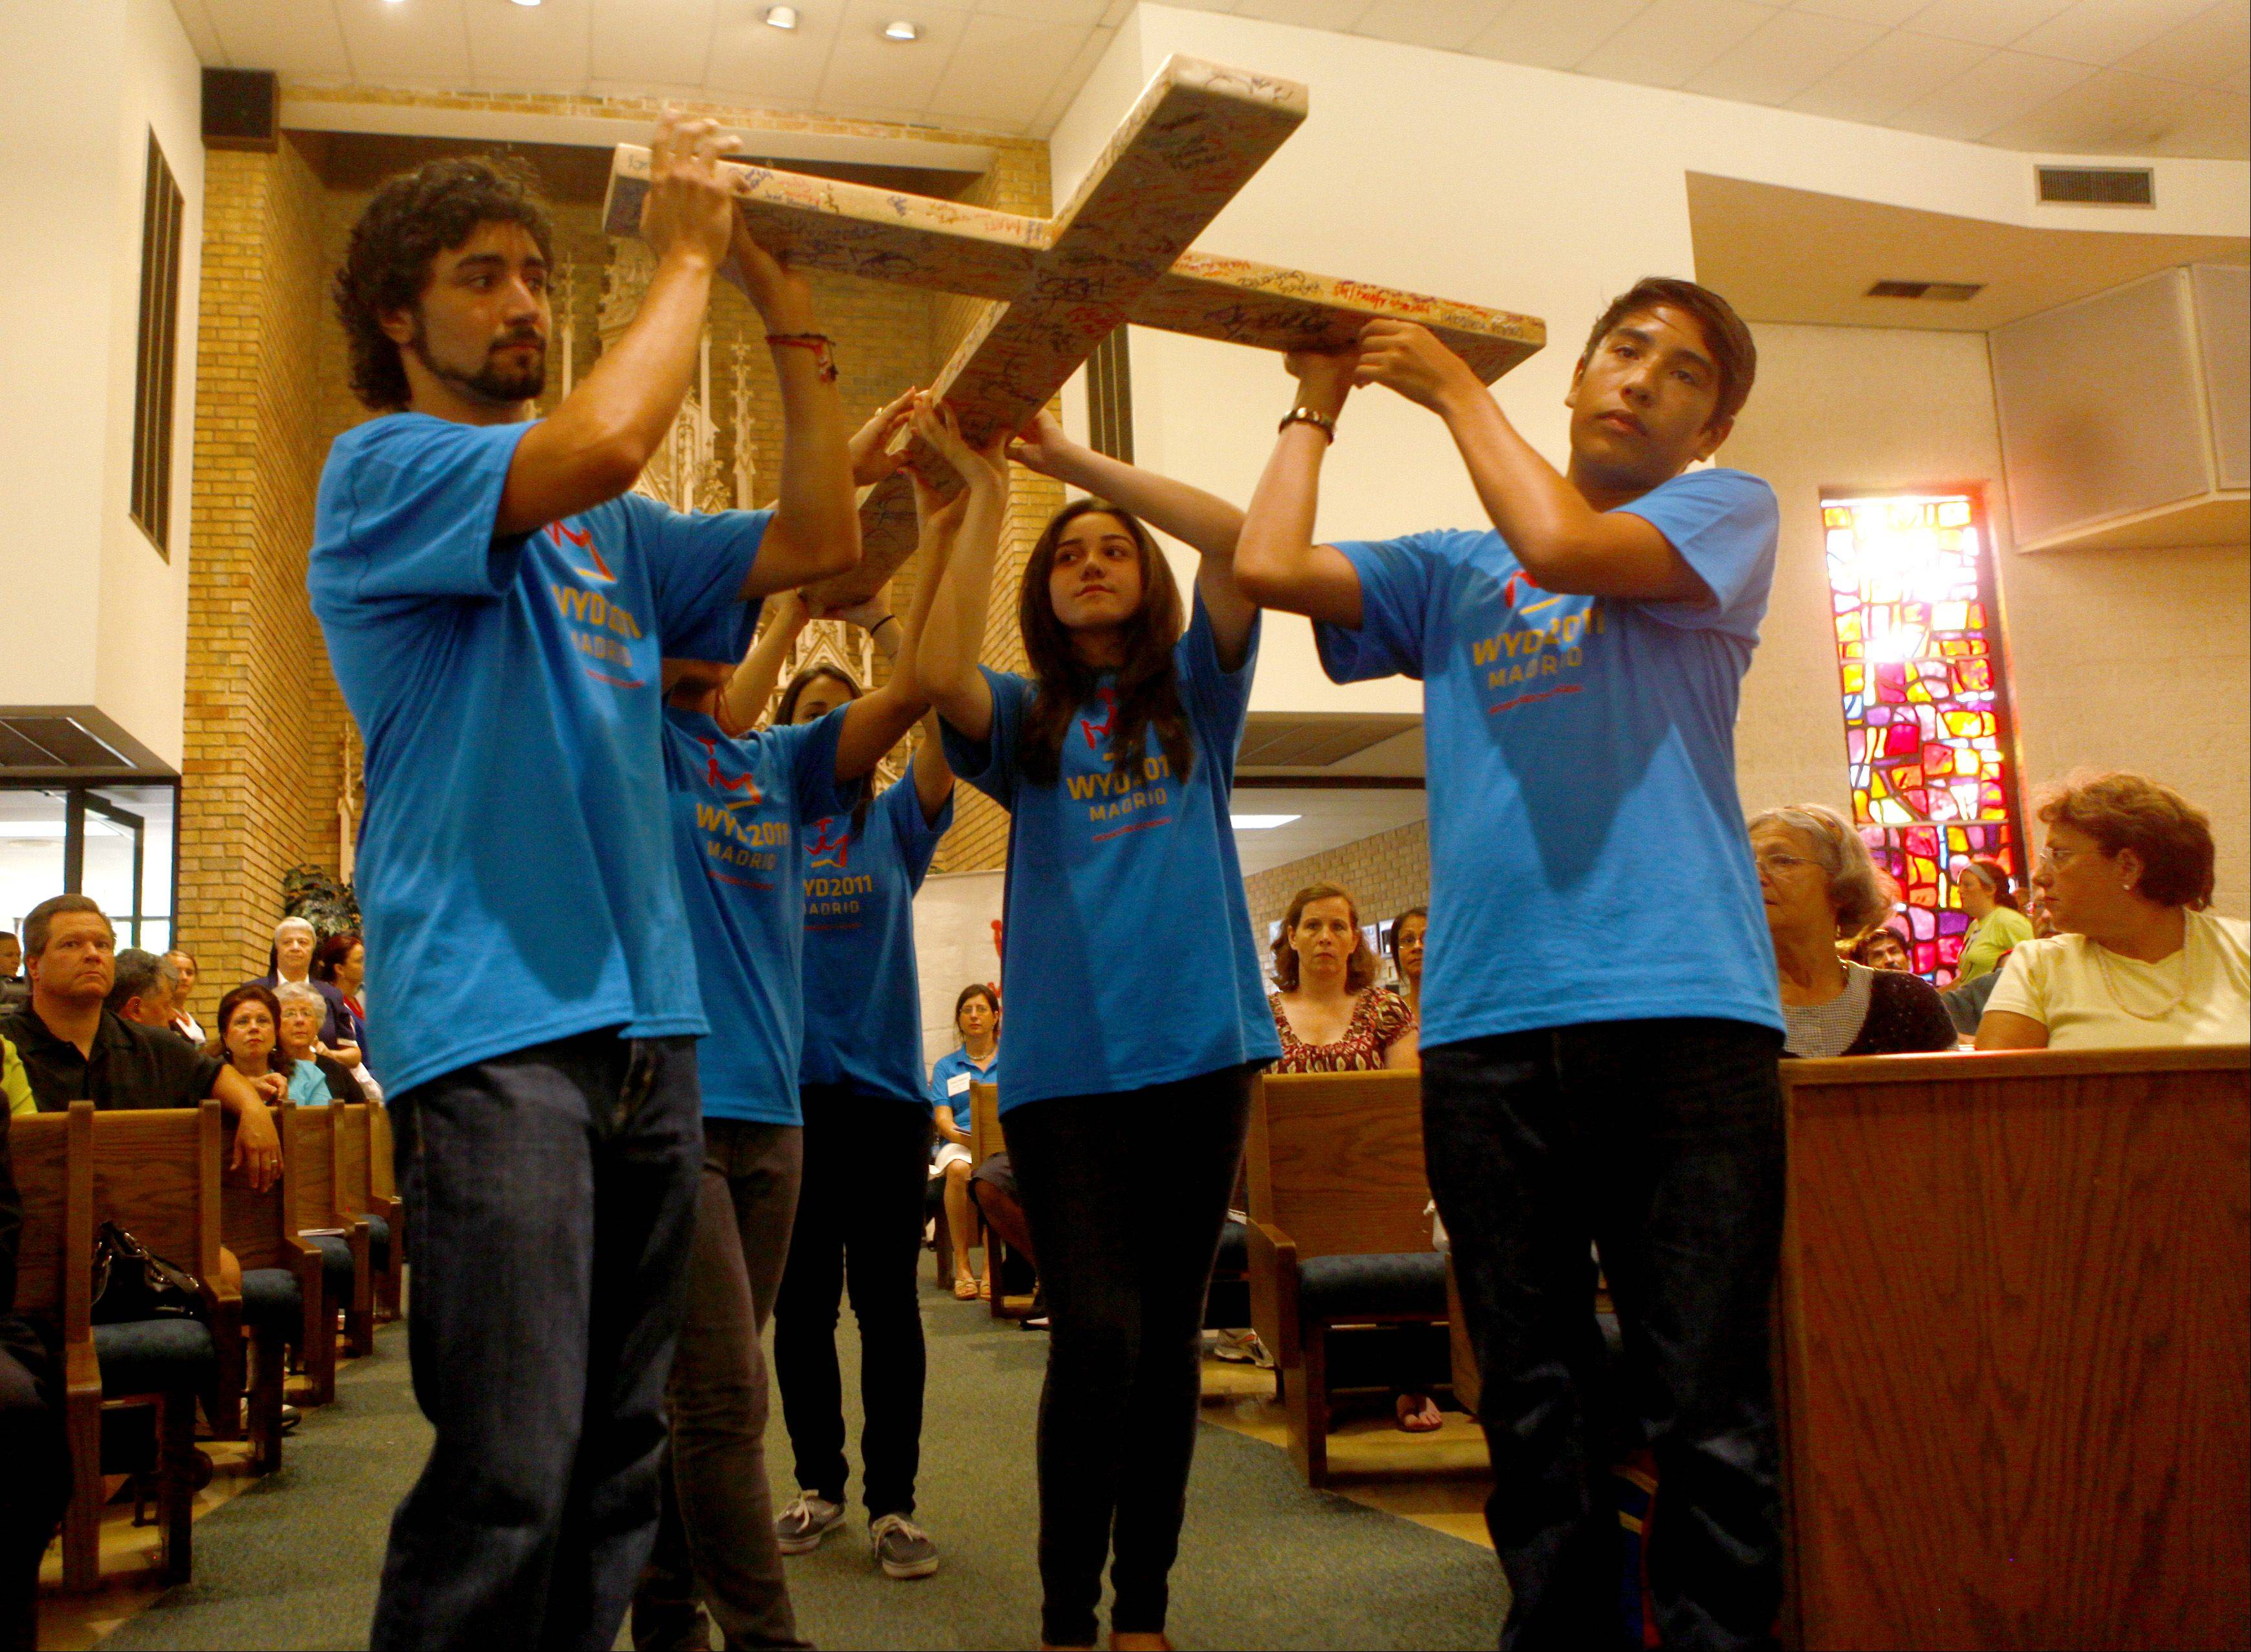 Teens participating in the World Youth Day carry a cross during Friday night Mass at St. Mary Parish in Buffalo Grove. The cross is signed by all the teens traveling to Madrid. About 500 teens from Cook and Lake county will be part of the pilgrimage in August.